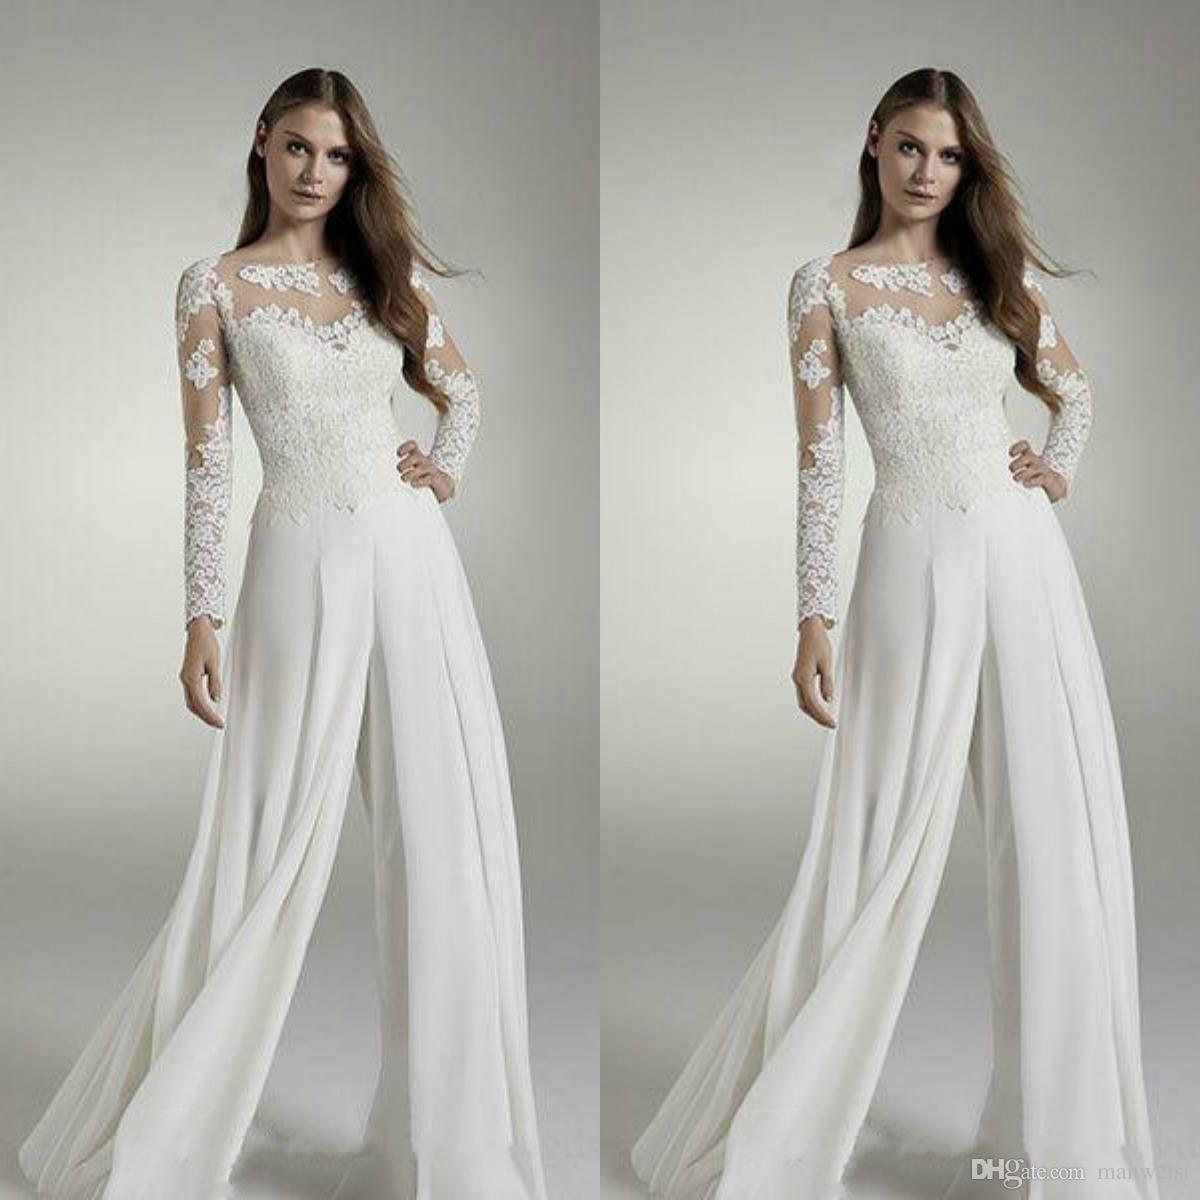 Discount Designer Wedding Gowns: Zuhair Murad Jumpsuits 2019 Wedding Dresses Long Sleeve